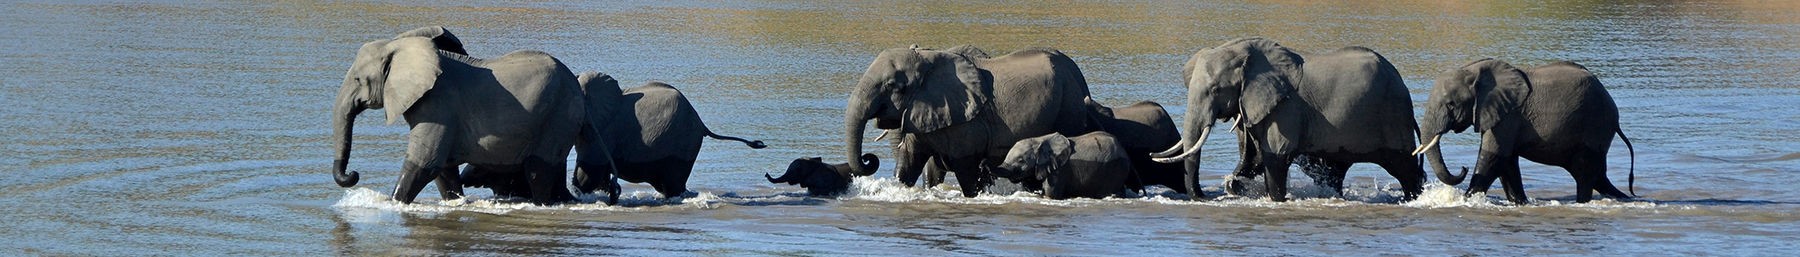 Elephants crossing the Luangwa River